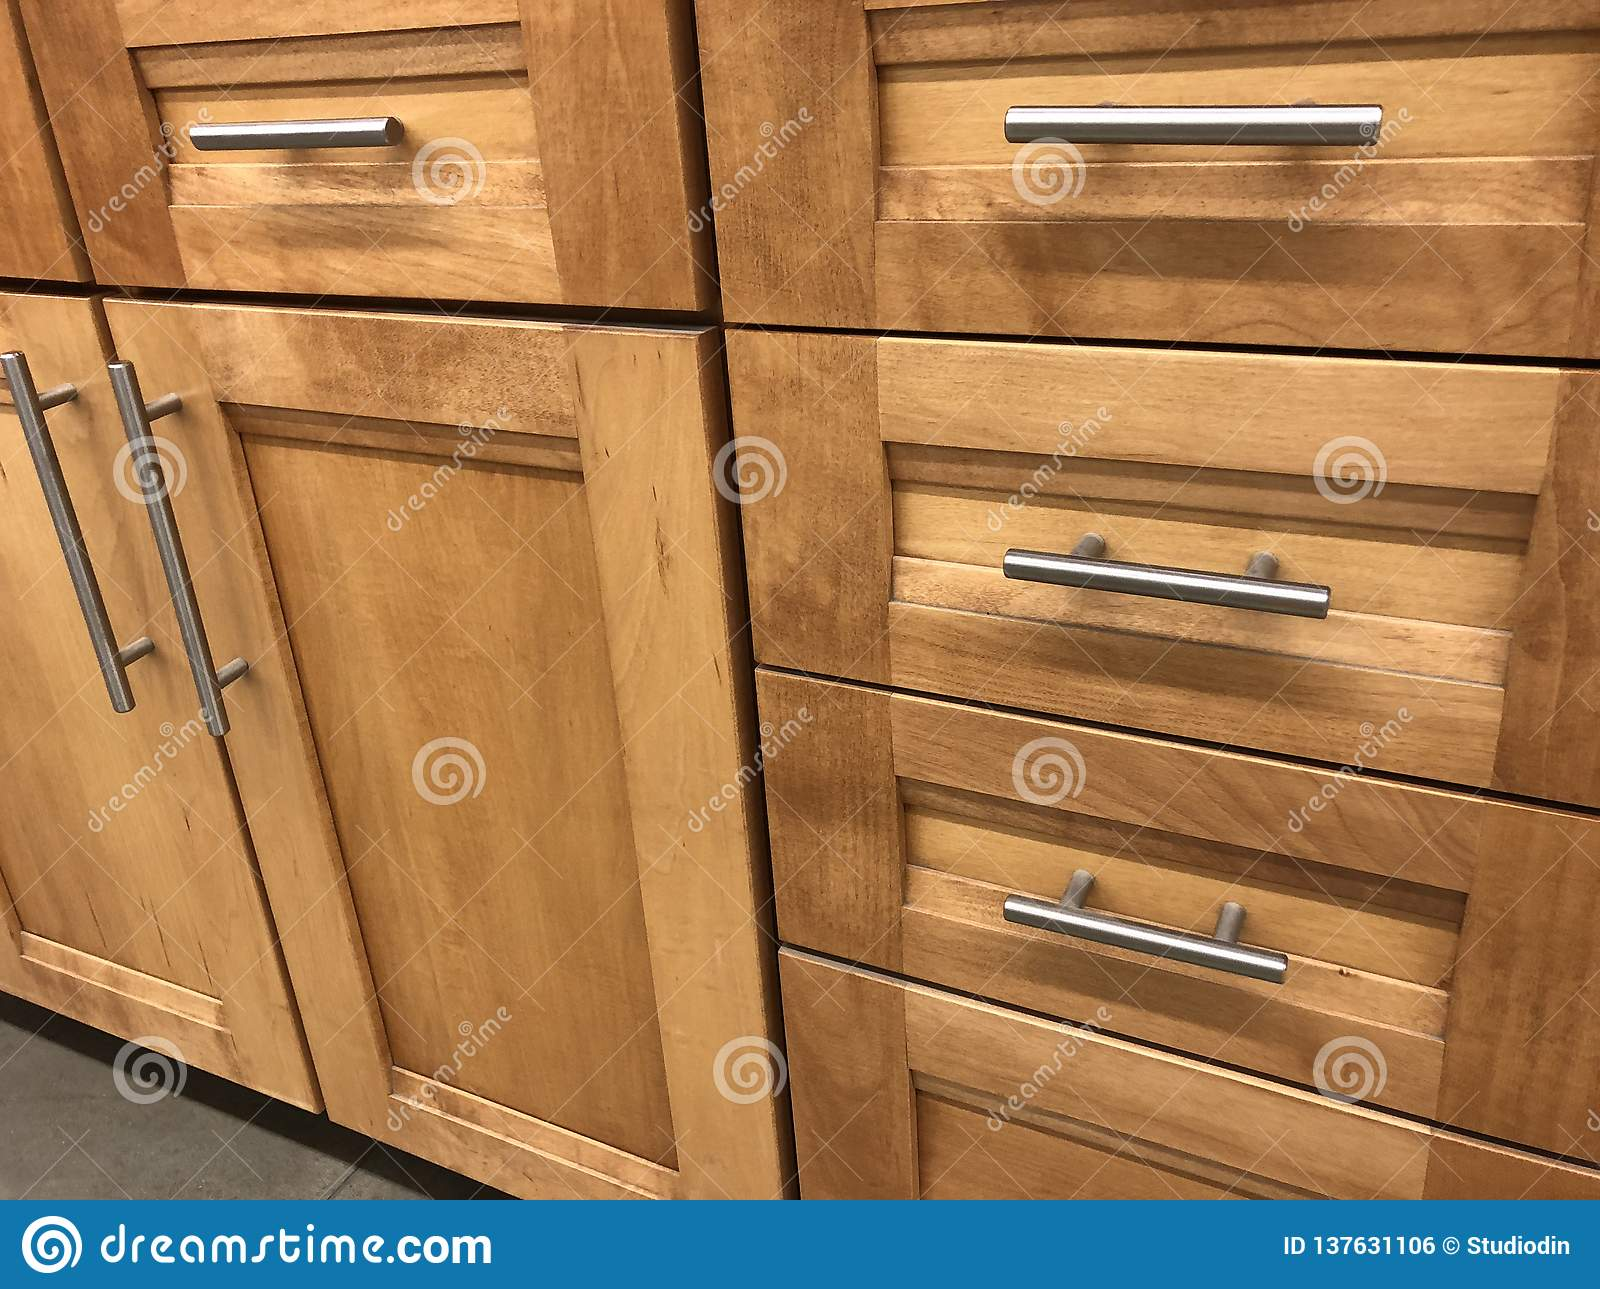 Kitchen Cabinets Made Of Natural Wood Maple With Chrome Handles Stock Photo Image Of Building Architecture 137631106